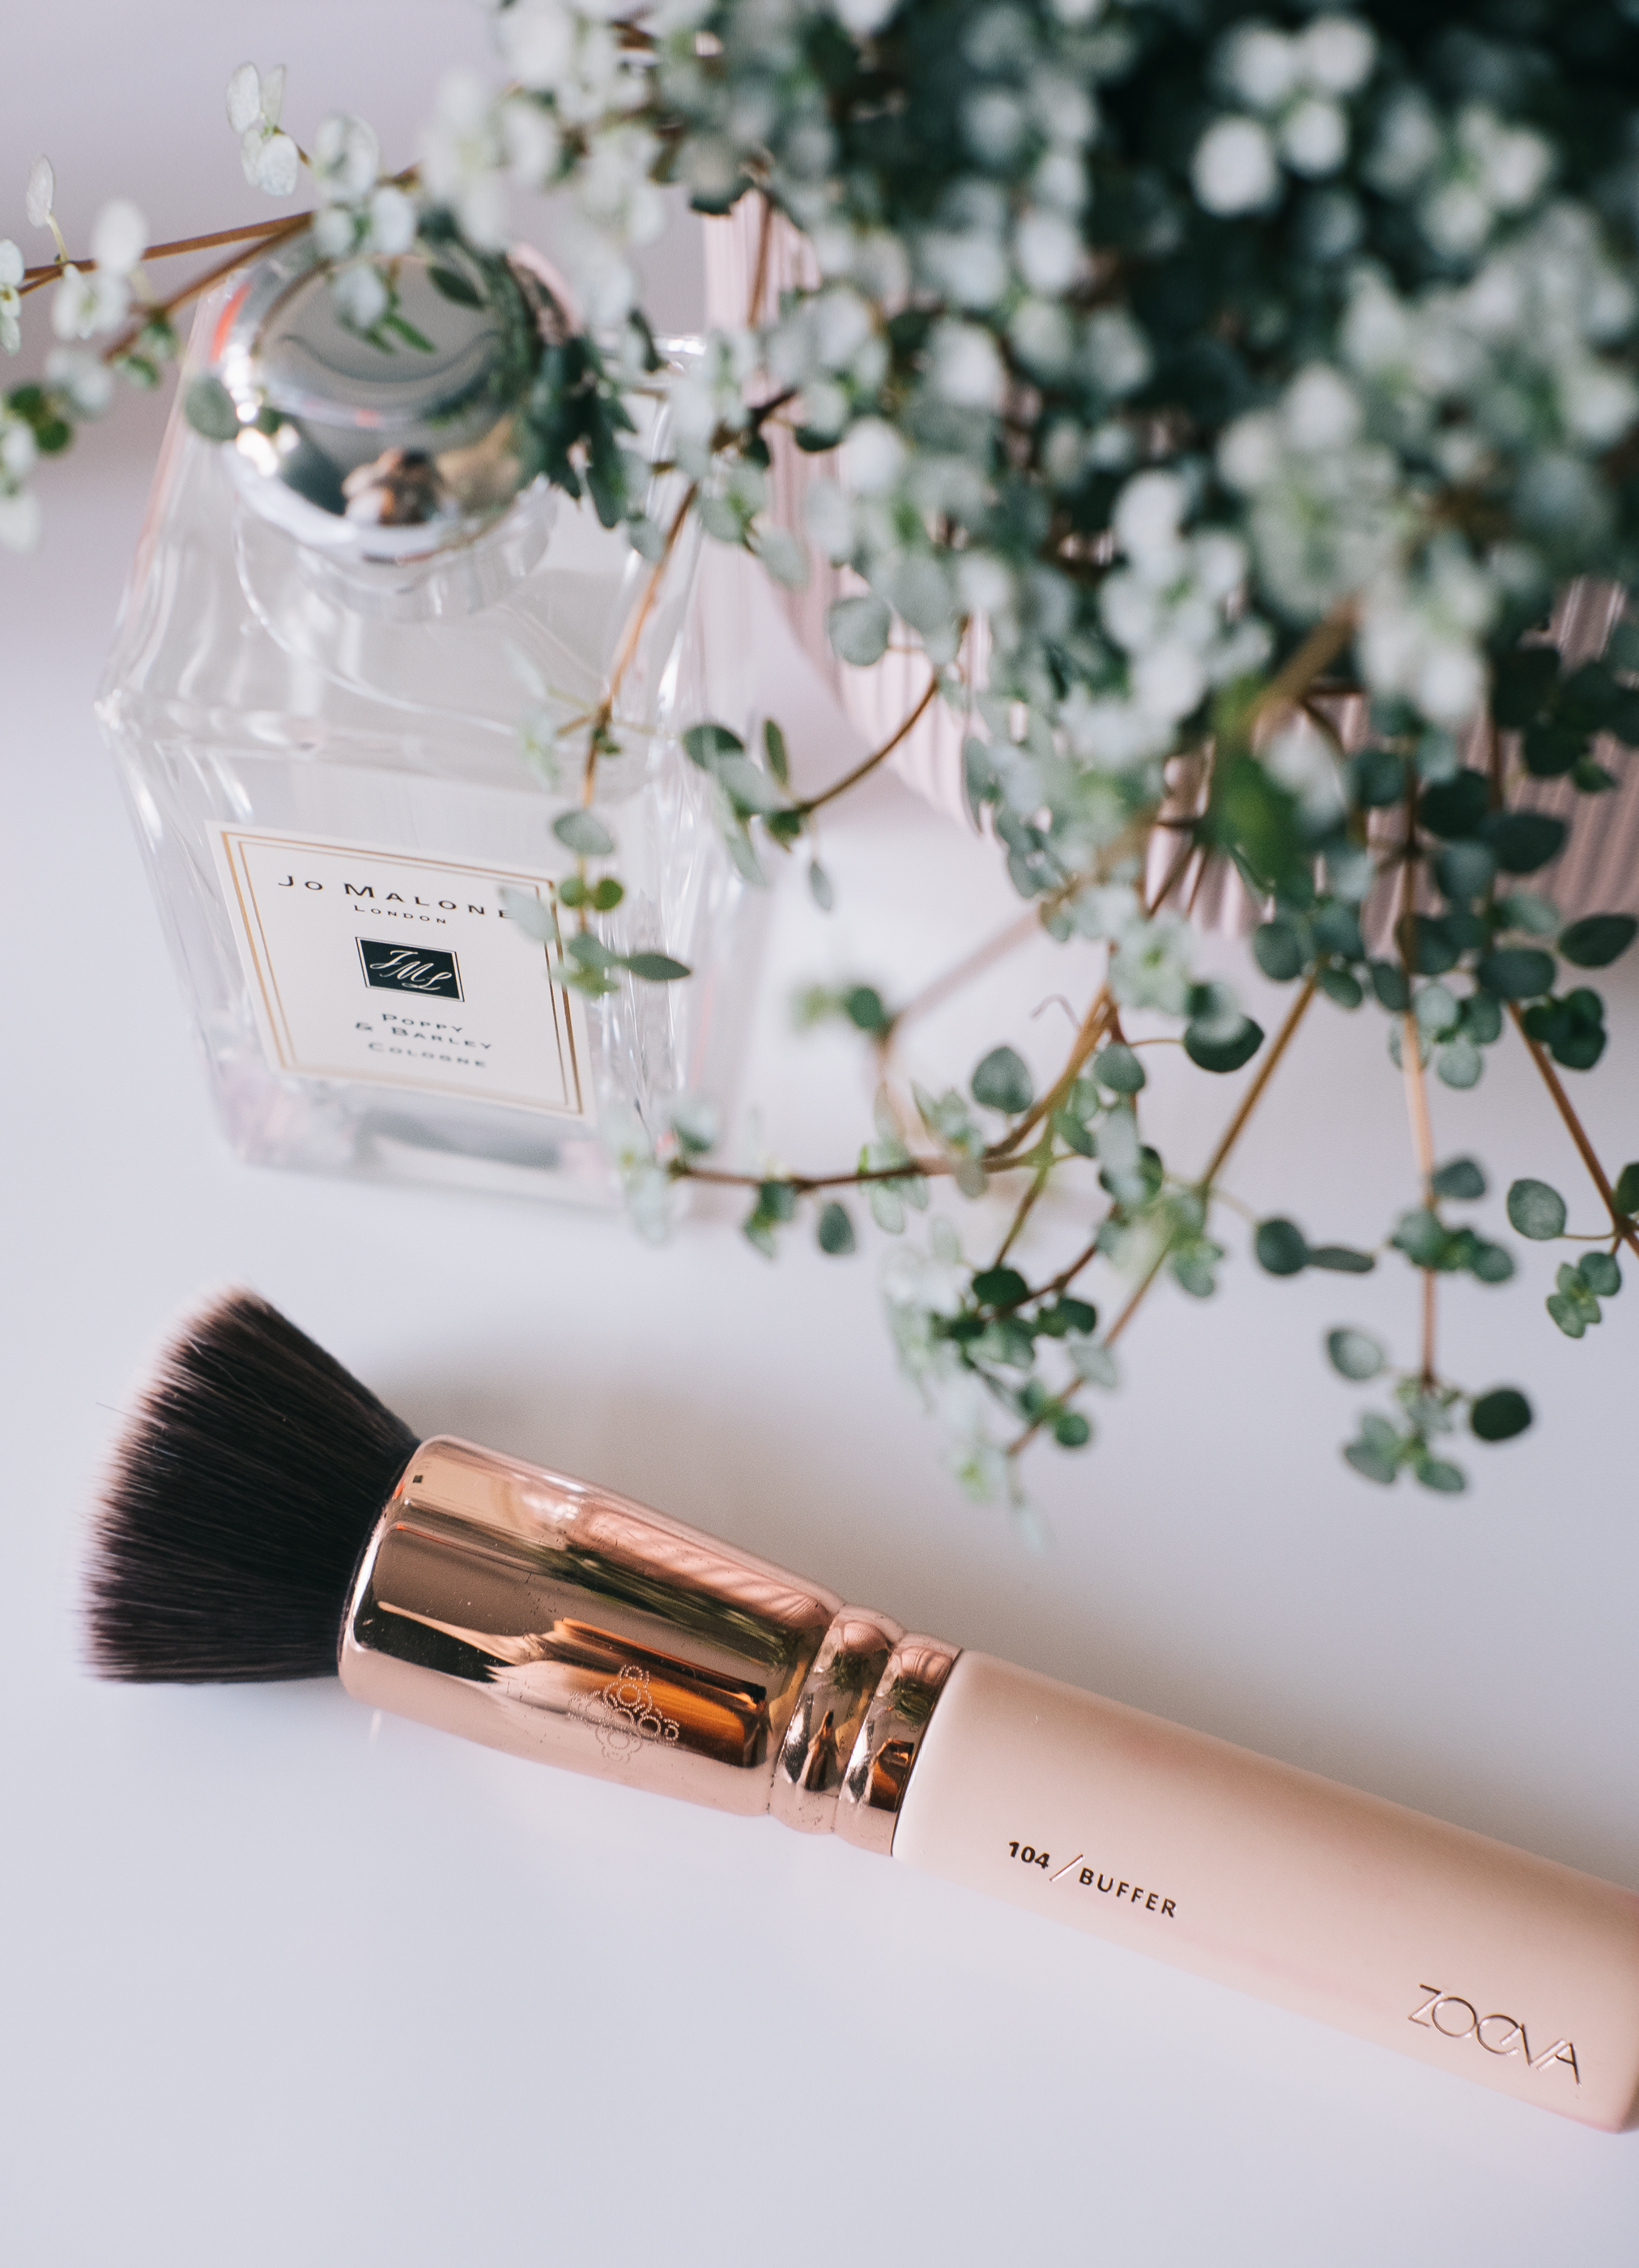 zoeva 104 buffer brush (gifted) - I've been a long-time lover of the Zoeva makeup brushes, they've been my go-to for years now and I don't see that changing anytime soon. And for the last few years when it came to my foundation I've been using the Zoeva Silk Finish brush which is also fantastic but that's not been giving me best results lately so I think it might be time to replace it but this one is still going strong. The 104 buffer brush is a large dense flat-topped brush that blends in any type of base I have with absolute ease and despite its size, it still gets into all the contours of the face beautifully. All too often brushes that are this dense can soak up base products but that isn't the case with this and it's incredibly easy to wash too. Many have jumped ship to beauty sponges in recent years but I'm still loyal to brushes and I think I always will be a brush lover.